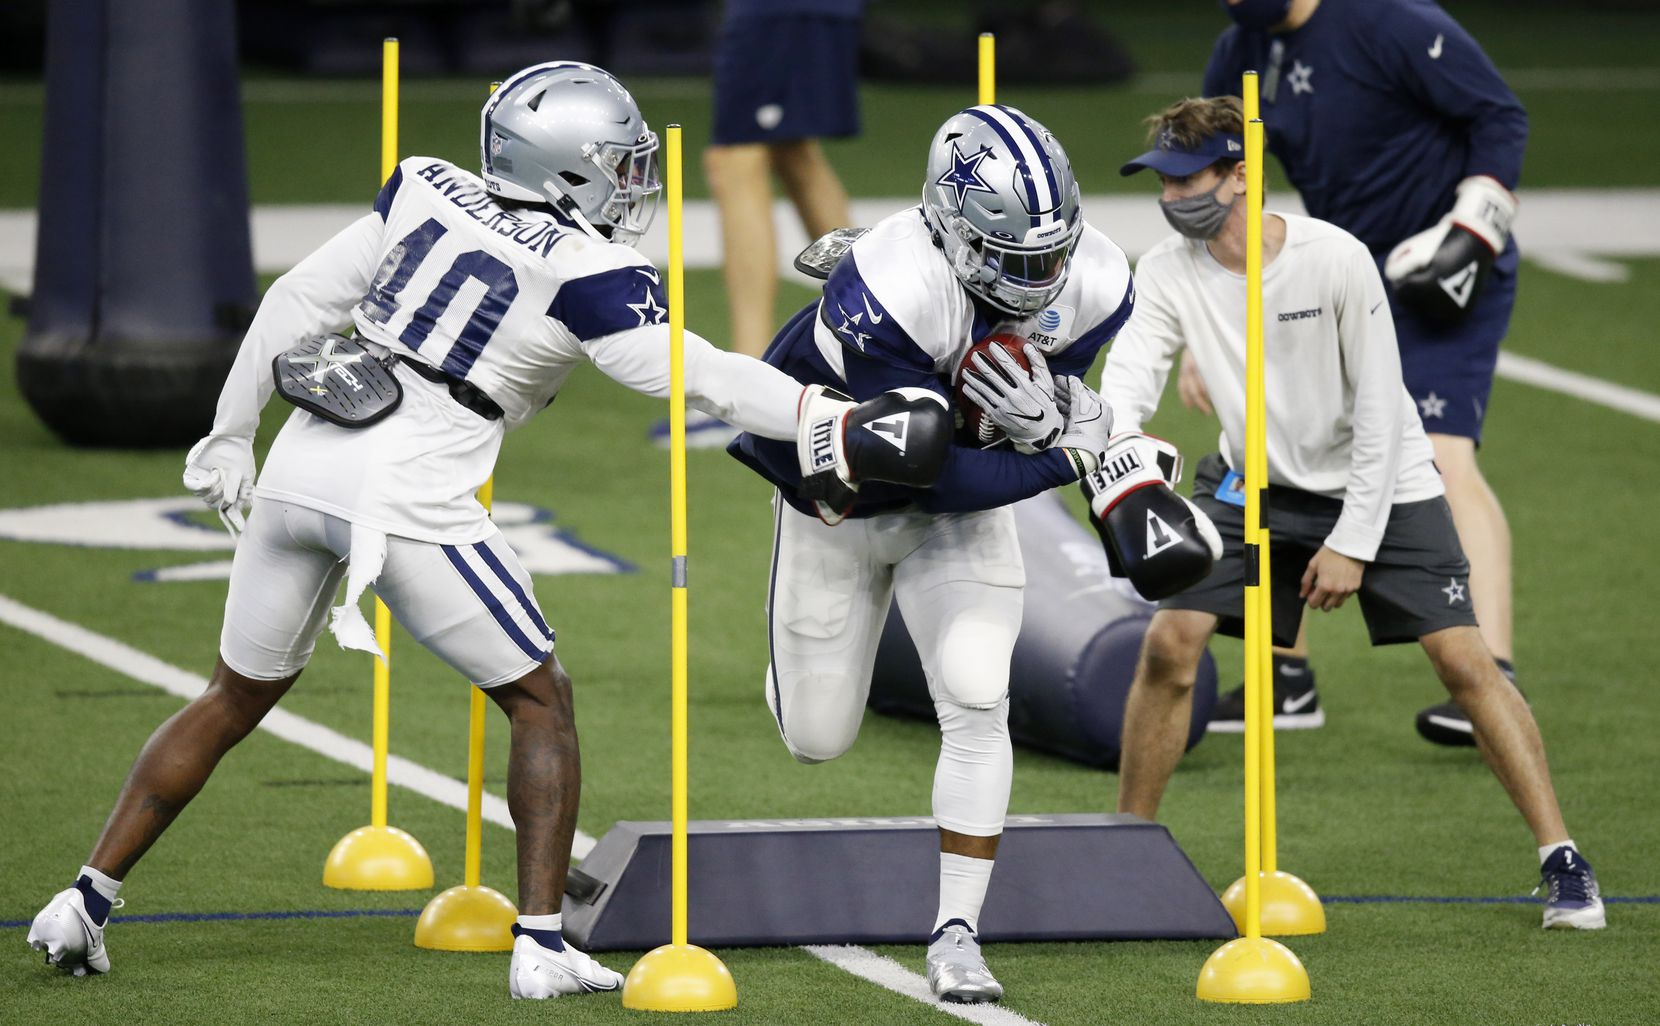 Dallas Cowboys running back Ezekiel Elliott (21) runs through a drill as Dallas Cowboys running back Darius Anderson (40) attempts to punch the ball out in practice during training camp at the Dallas Cowboys headquarters at The Star in Frisco, Texas on Thursday, August 27, 2020. (Vernon Bryant/The Dallas Morning News)